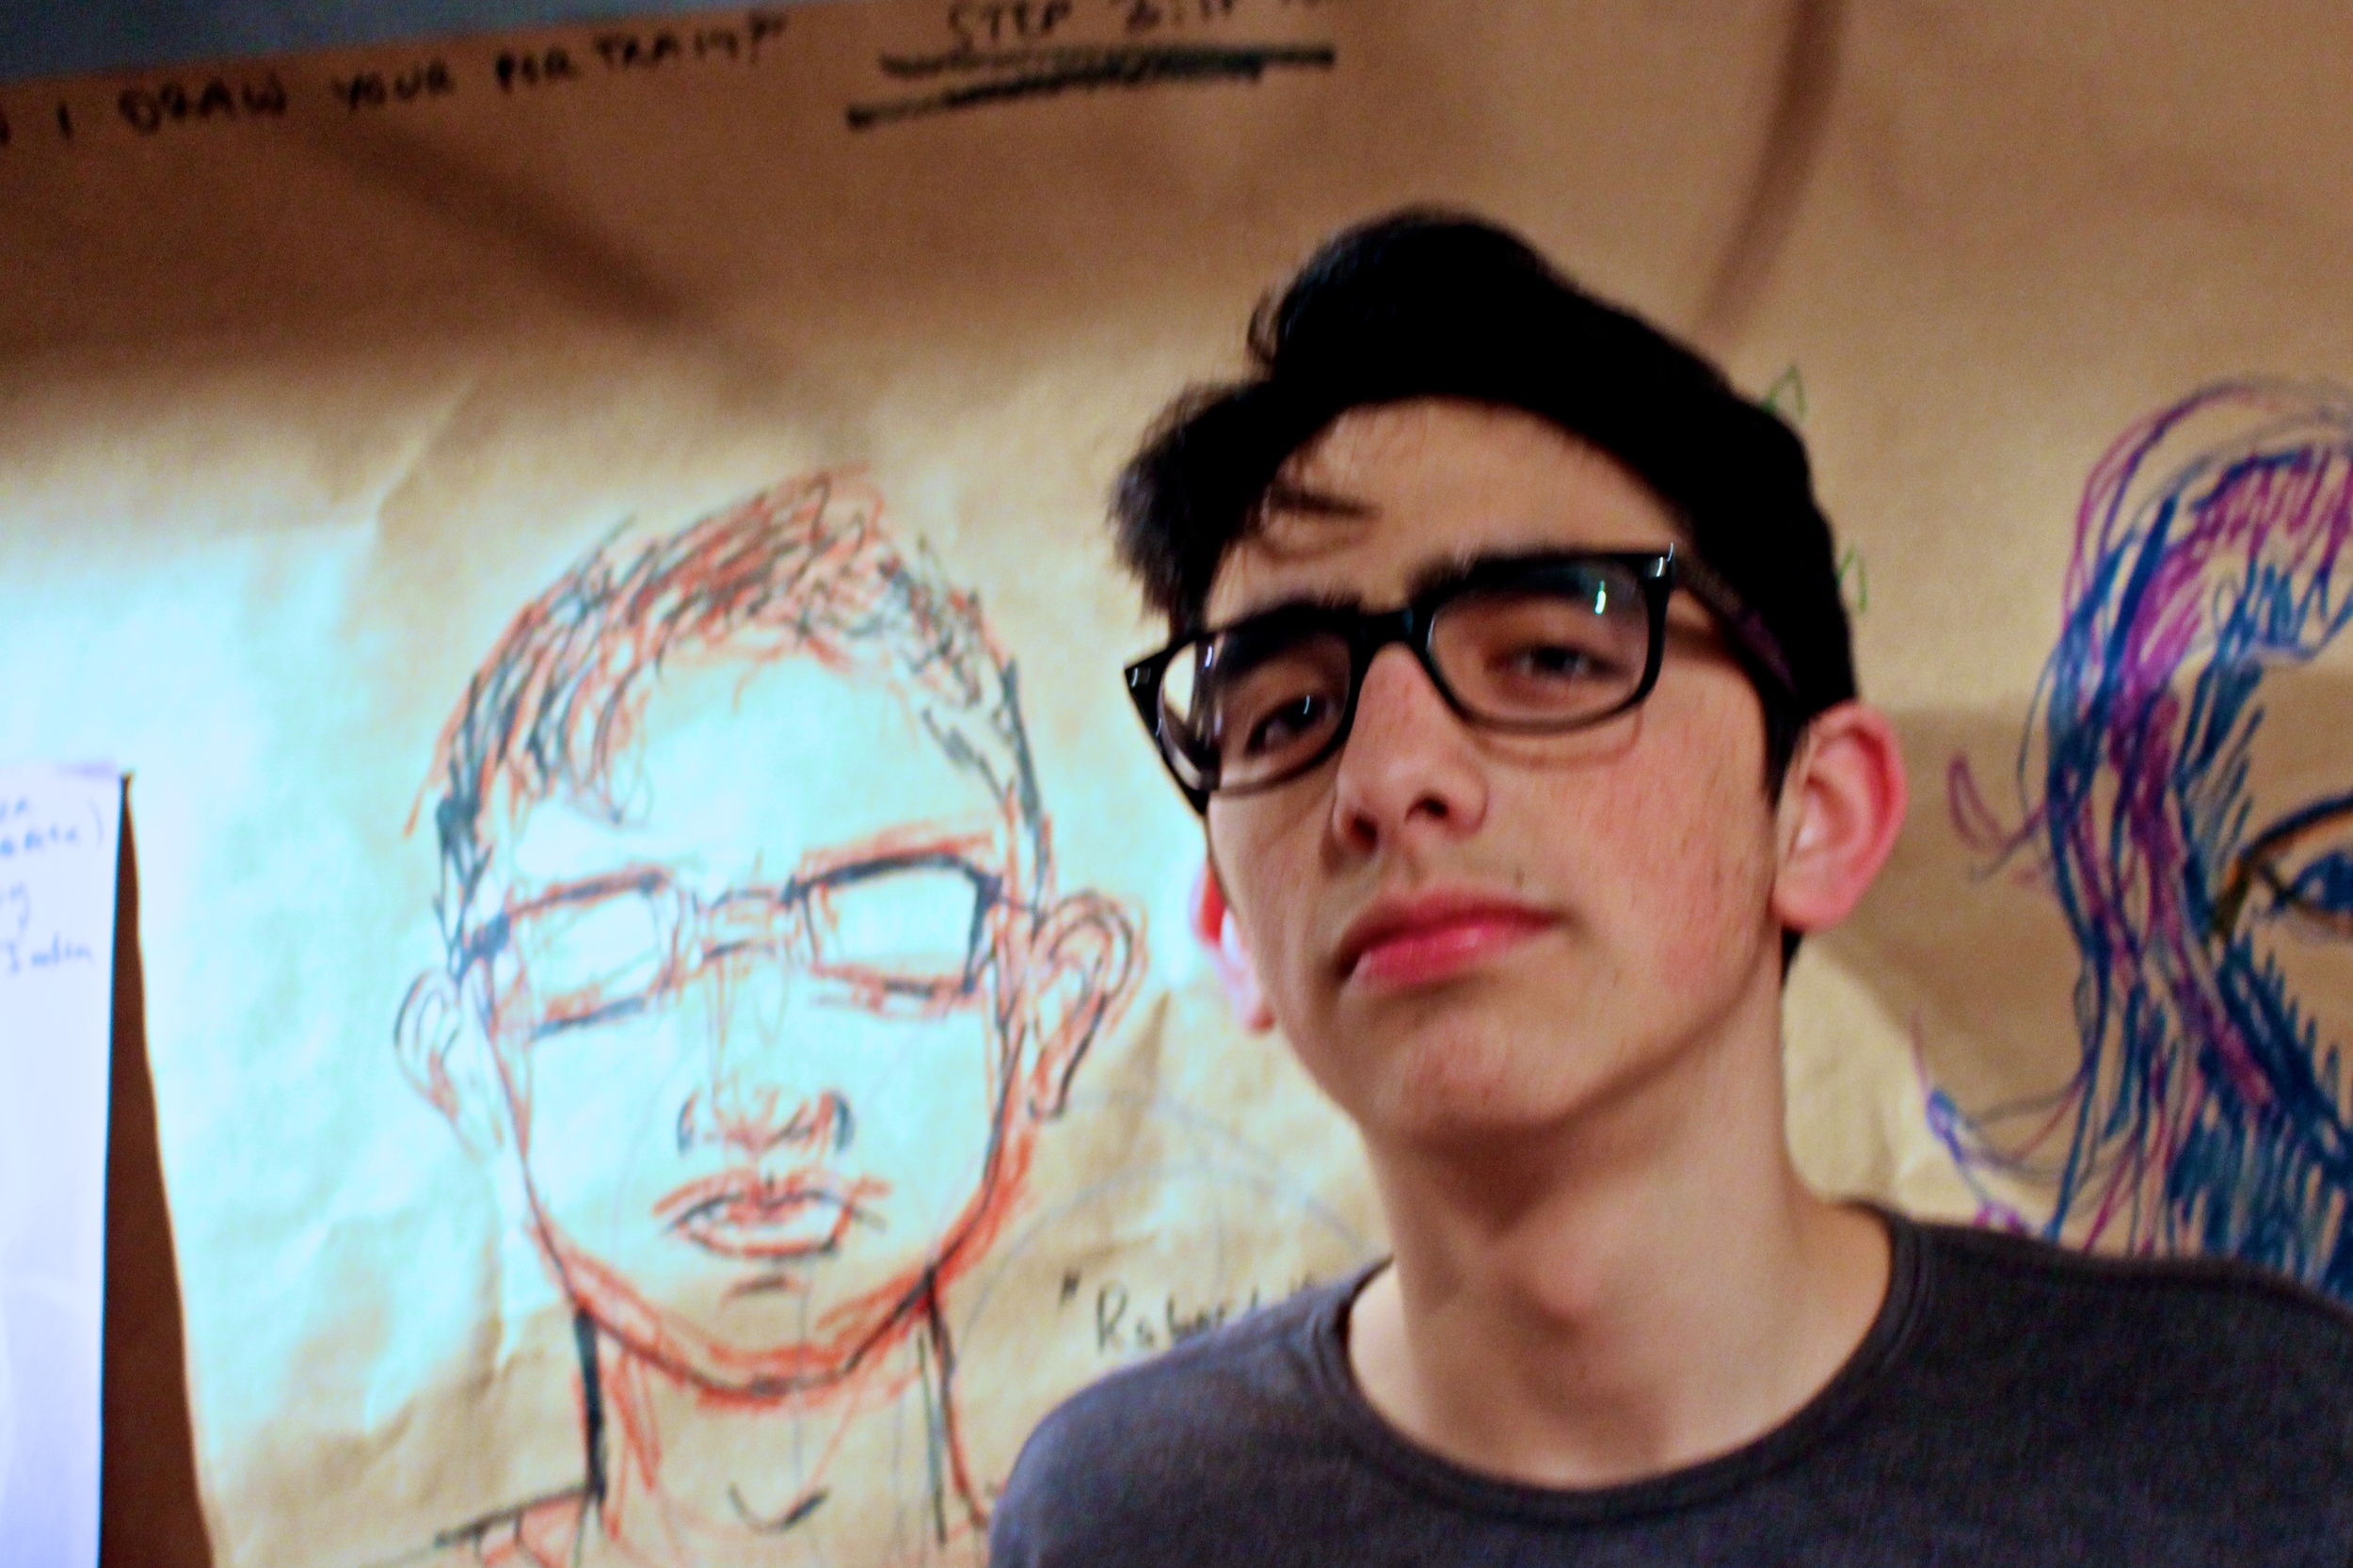 Roberto Rochin '17 poses next to a portrait drawn by Lilly Rosner '14